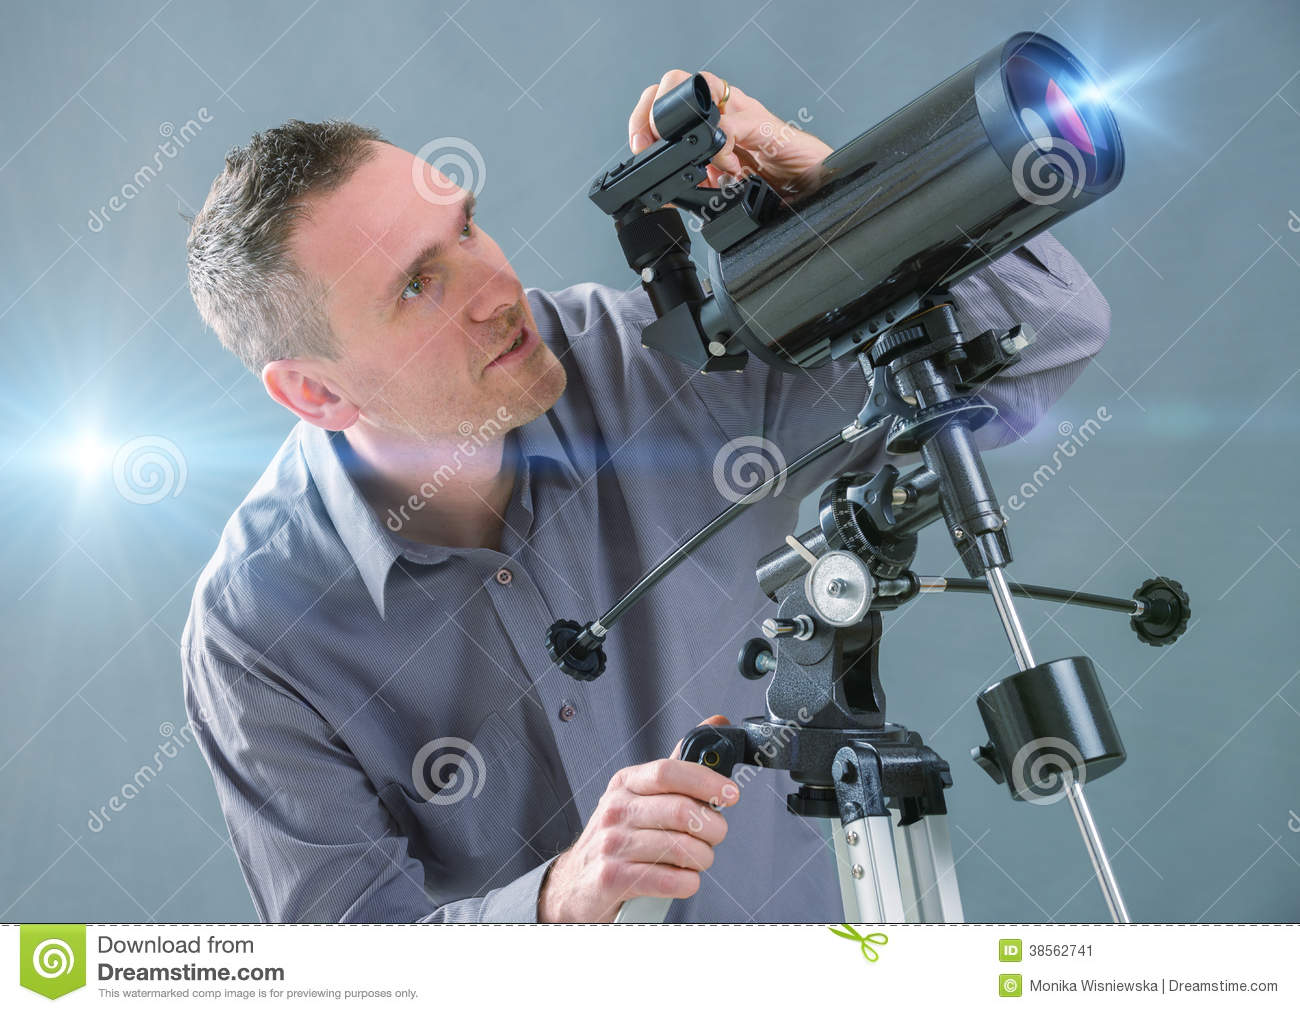 Man Looking Through Telescope Stock Image - Image: 38562741